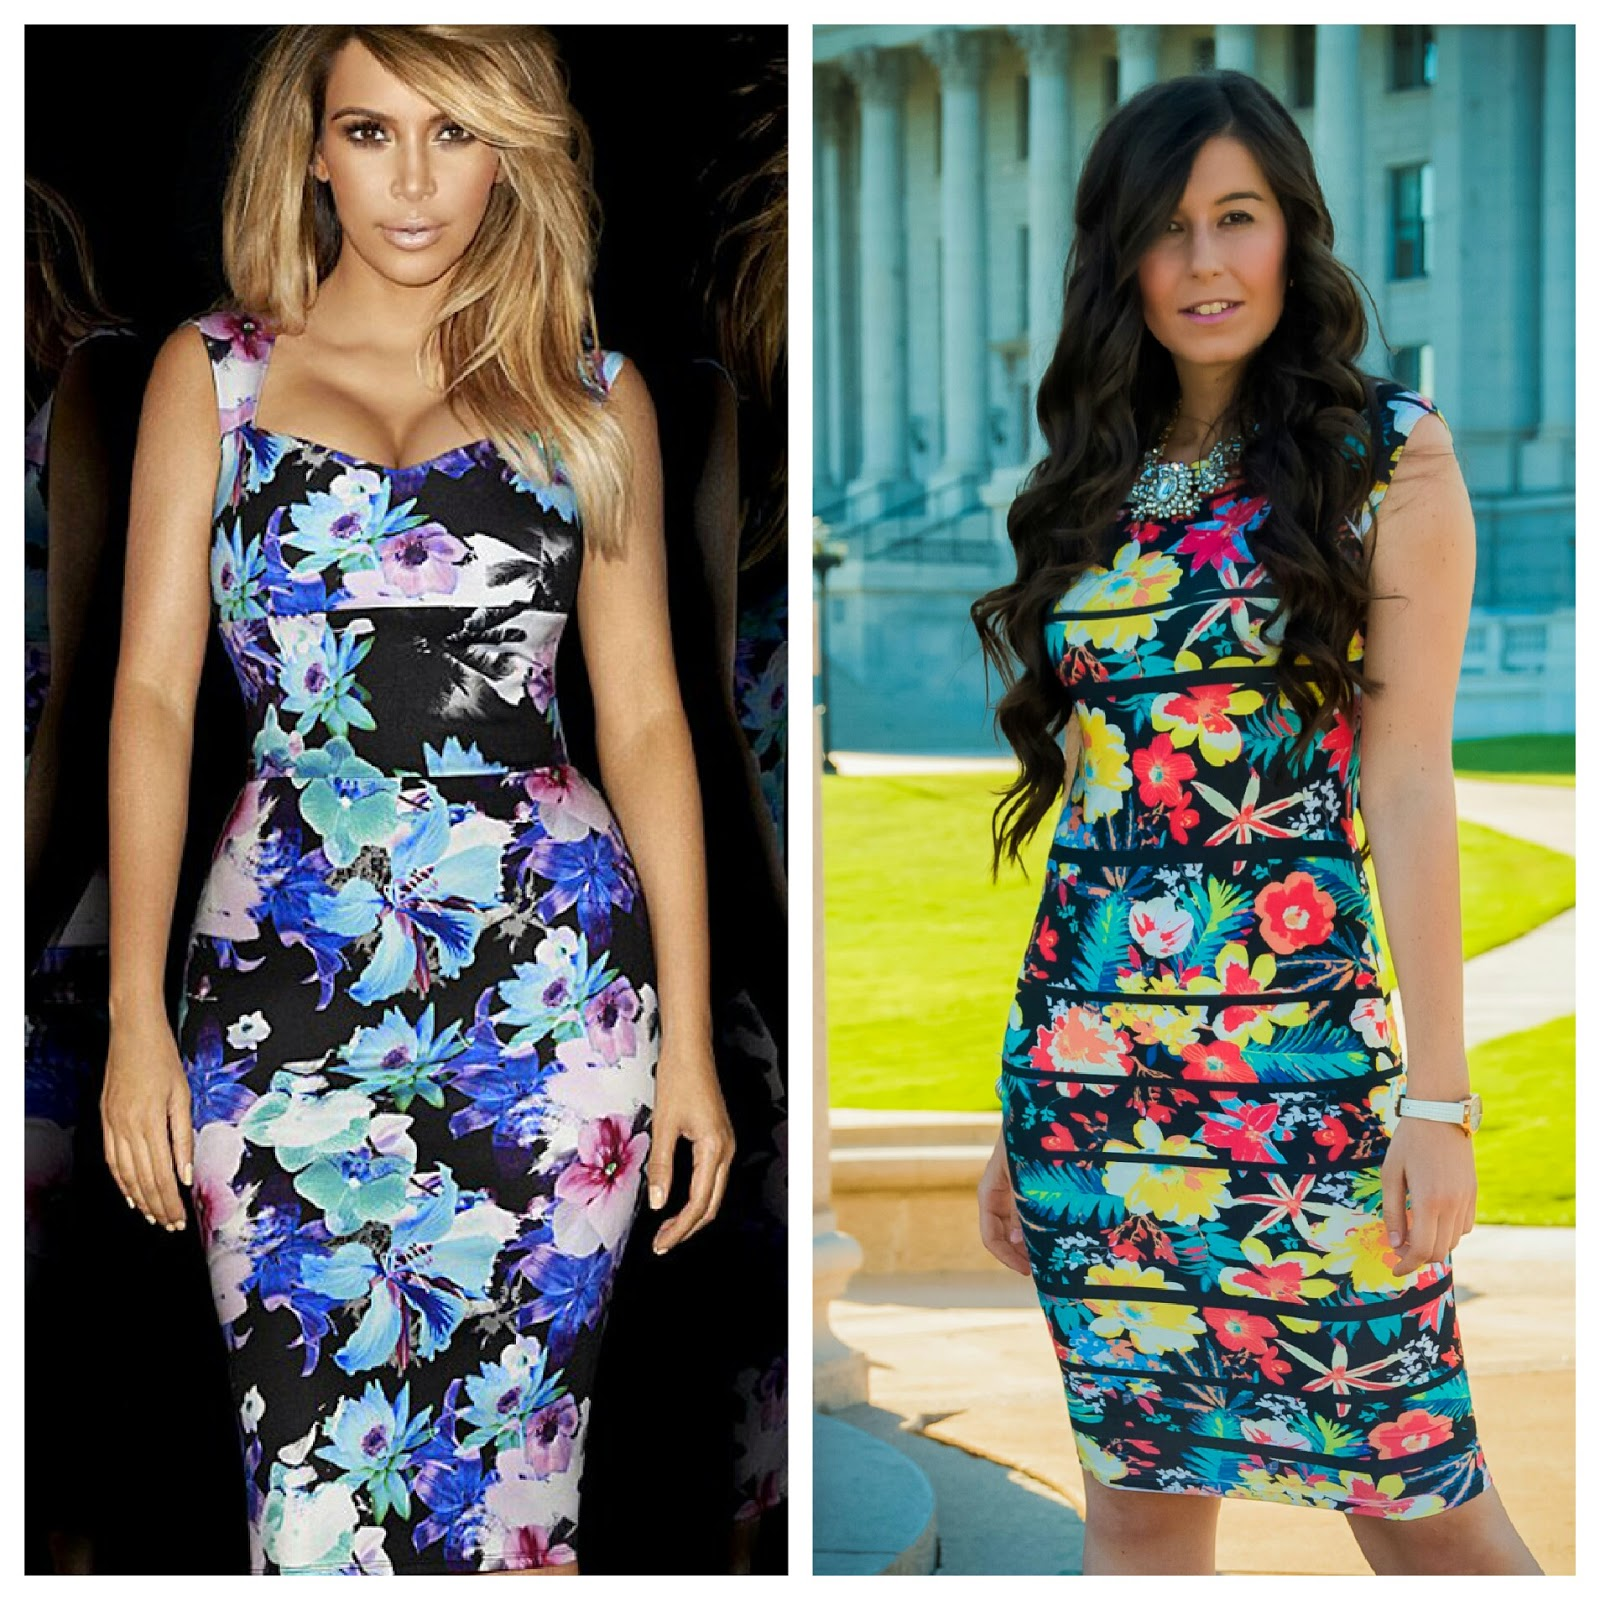 salt lake city, kim kardashian, kim kardashian look for less, kim kardashian inspired outfit, kim kardashian floral dress, salt lake city capitol, capitol building, floral bodycon dress, bodycon dress, floral dress, pink pumps, amiclubwear, klaus kobec, watch,